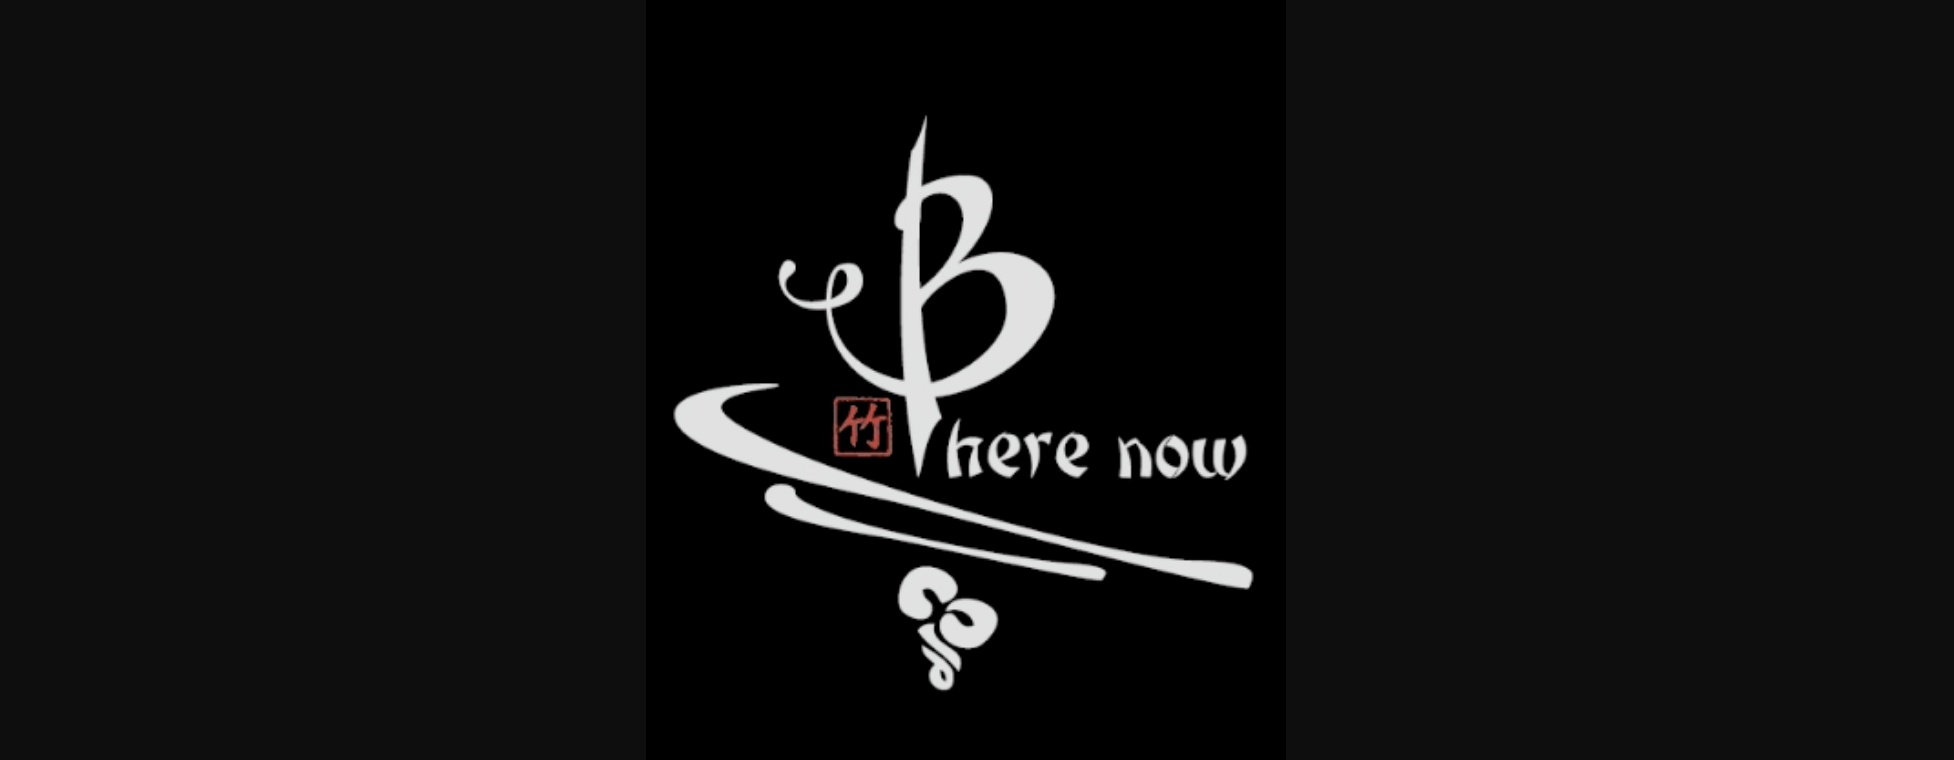 Be here now mindfulness mantra